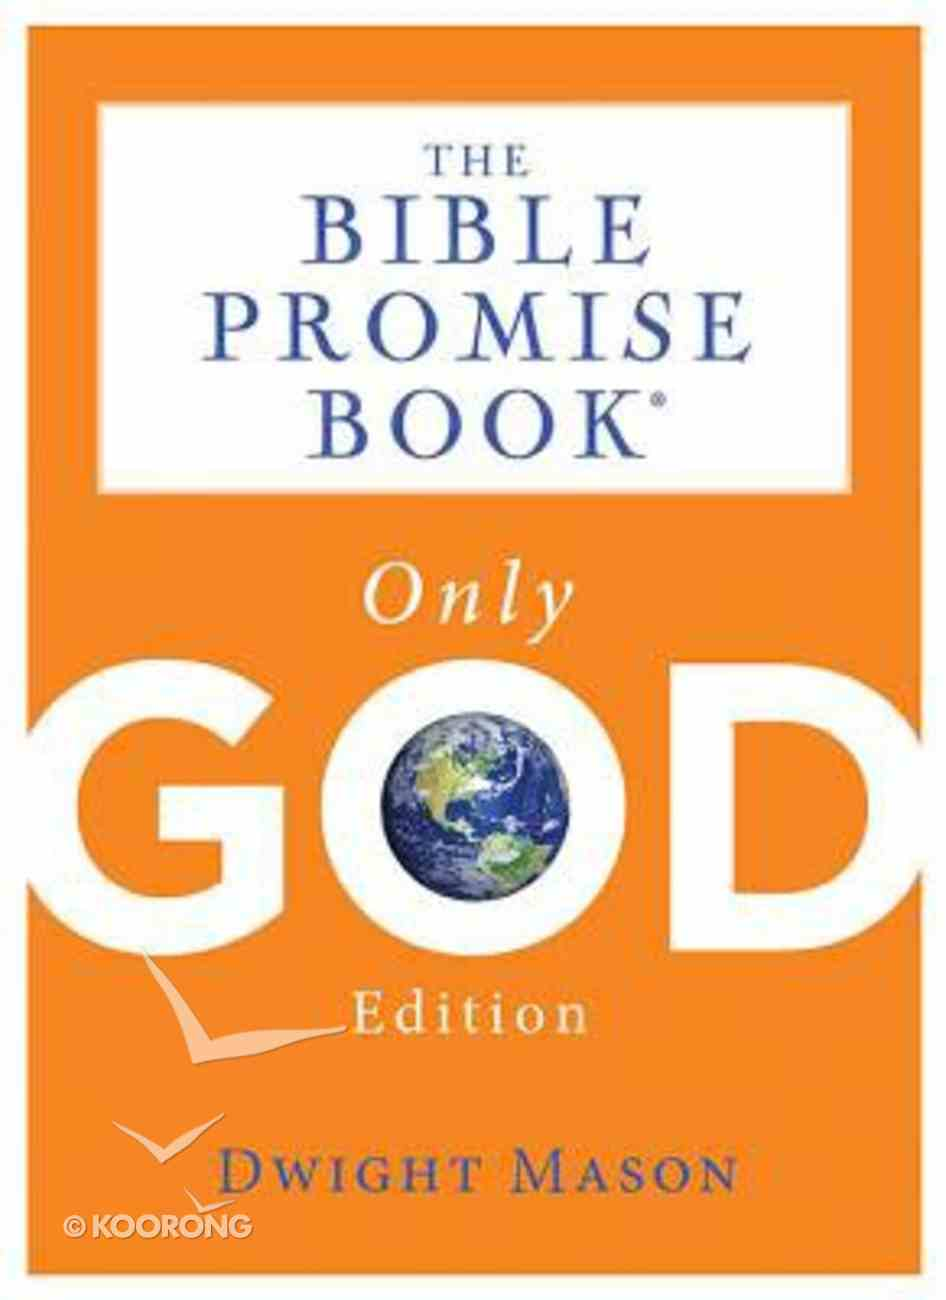 Bible Promise Book: Only God Edition Paperback